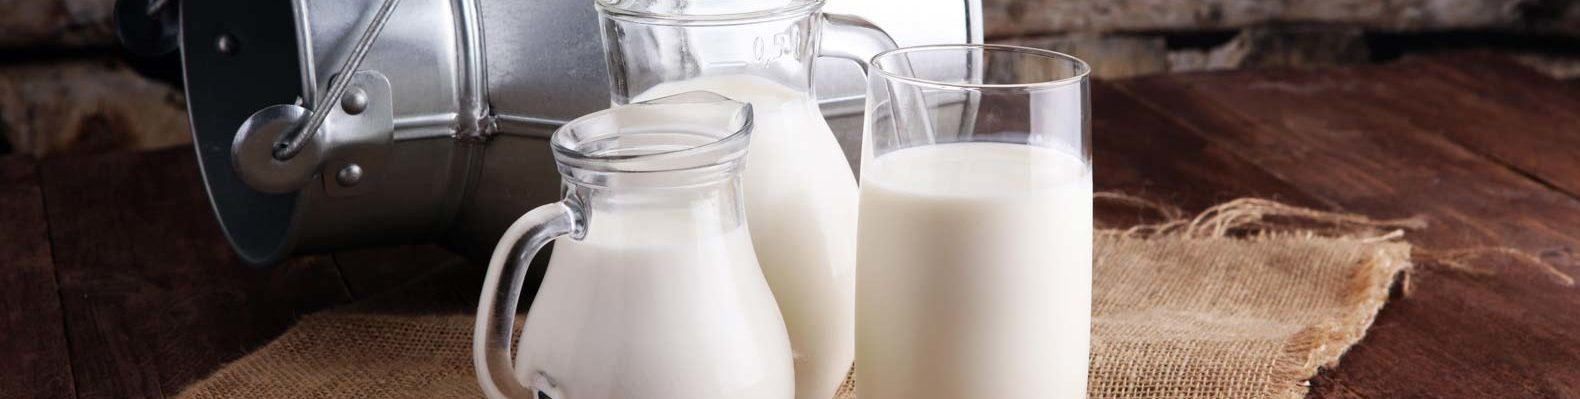 several glass pitchers of milk